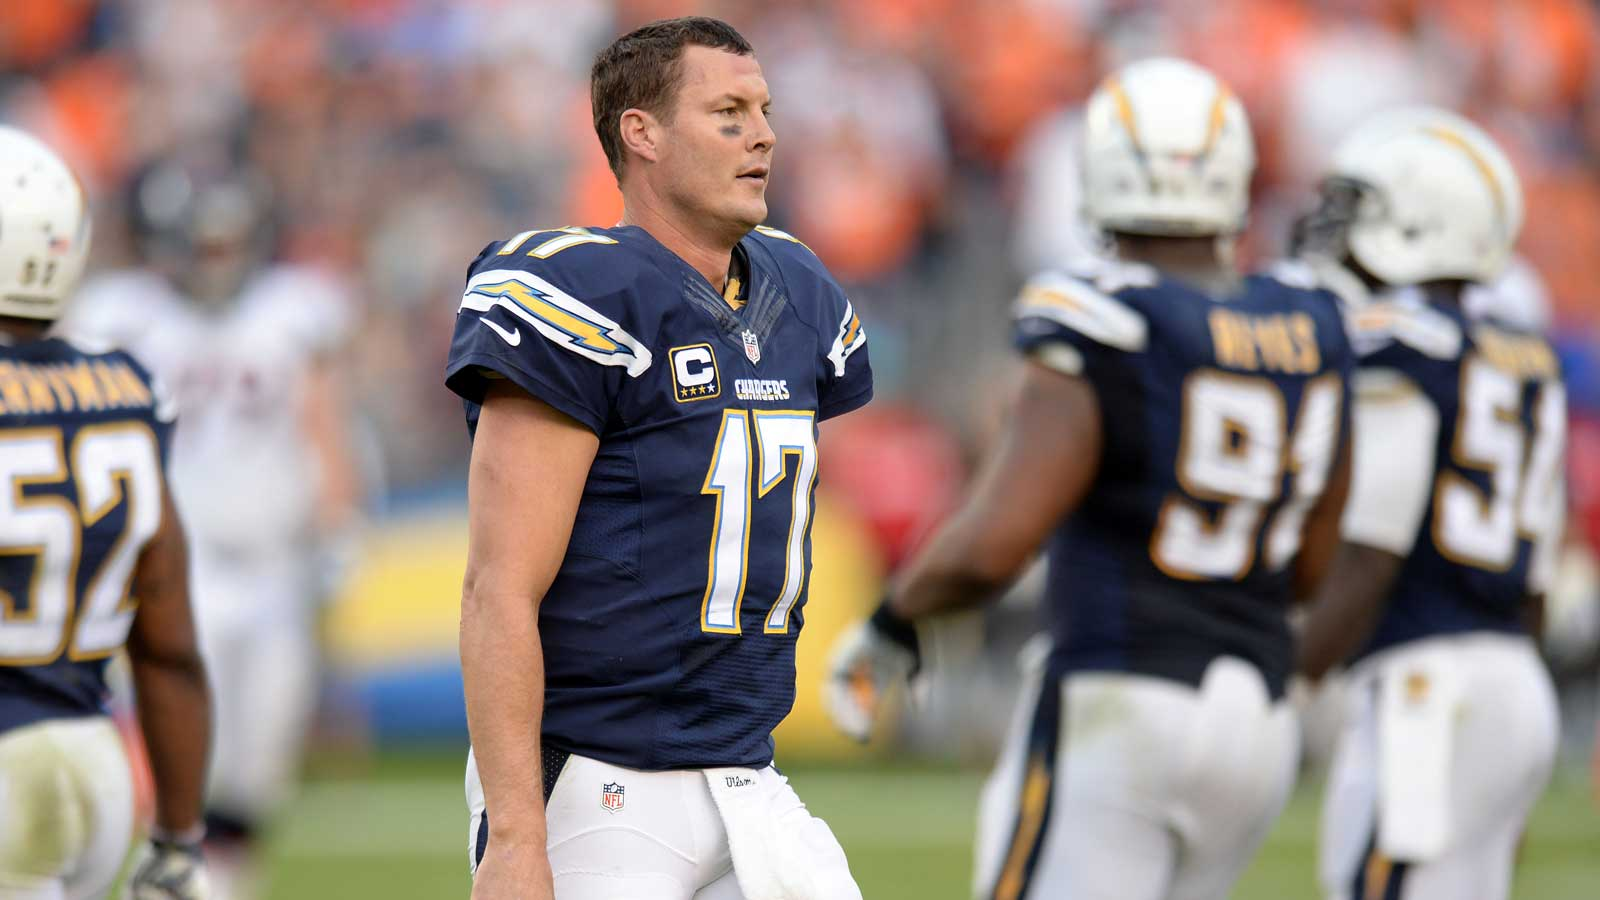 Chargers continue to melt down in possible final year in SD